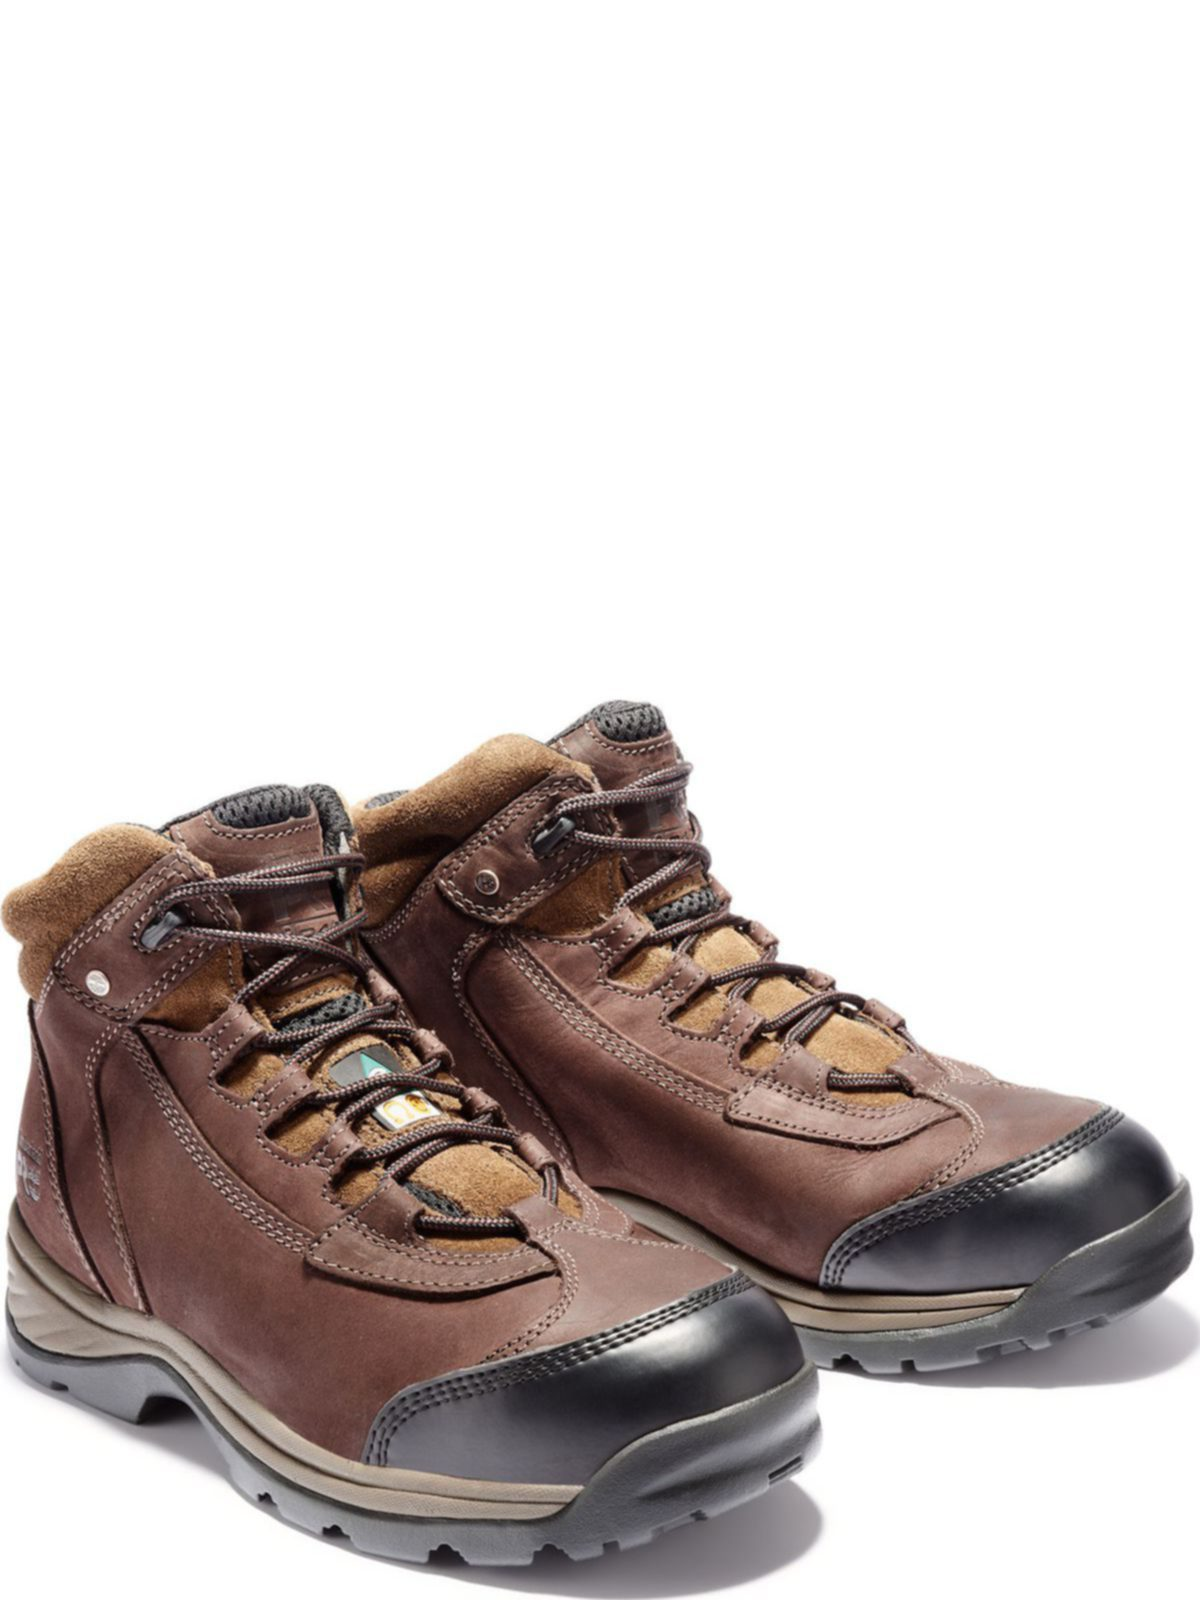 Bootamerica Timberland Pro Mens Ratchet Steel Safety Toe